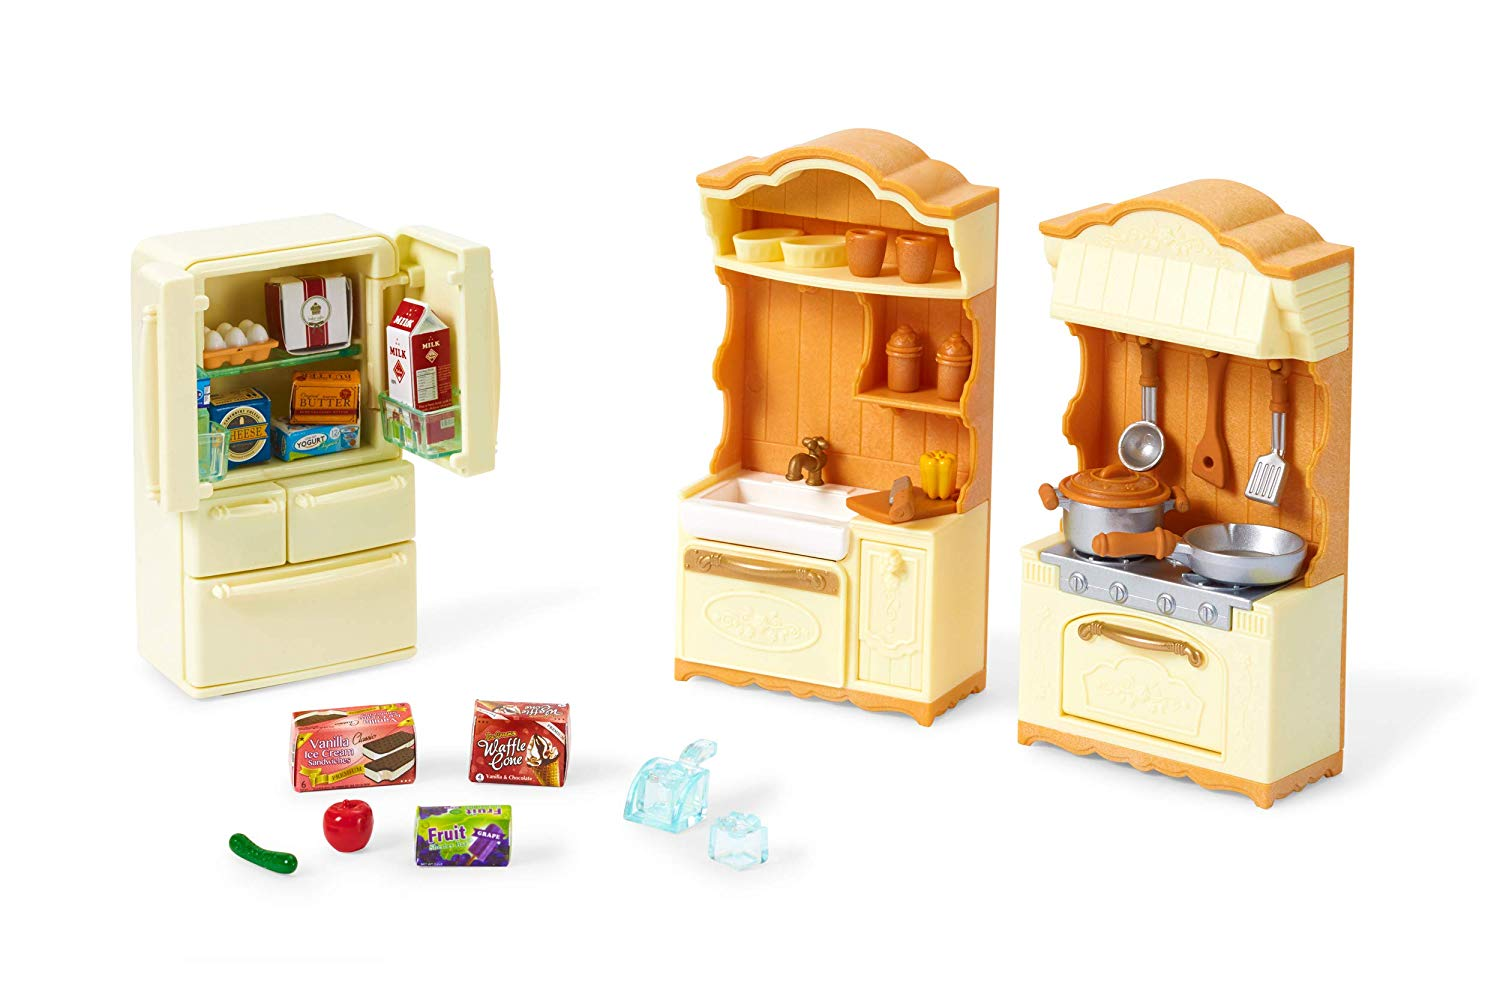 Calico Critters Kitchen Play Set Only 4 97 Was 19 95